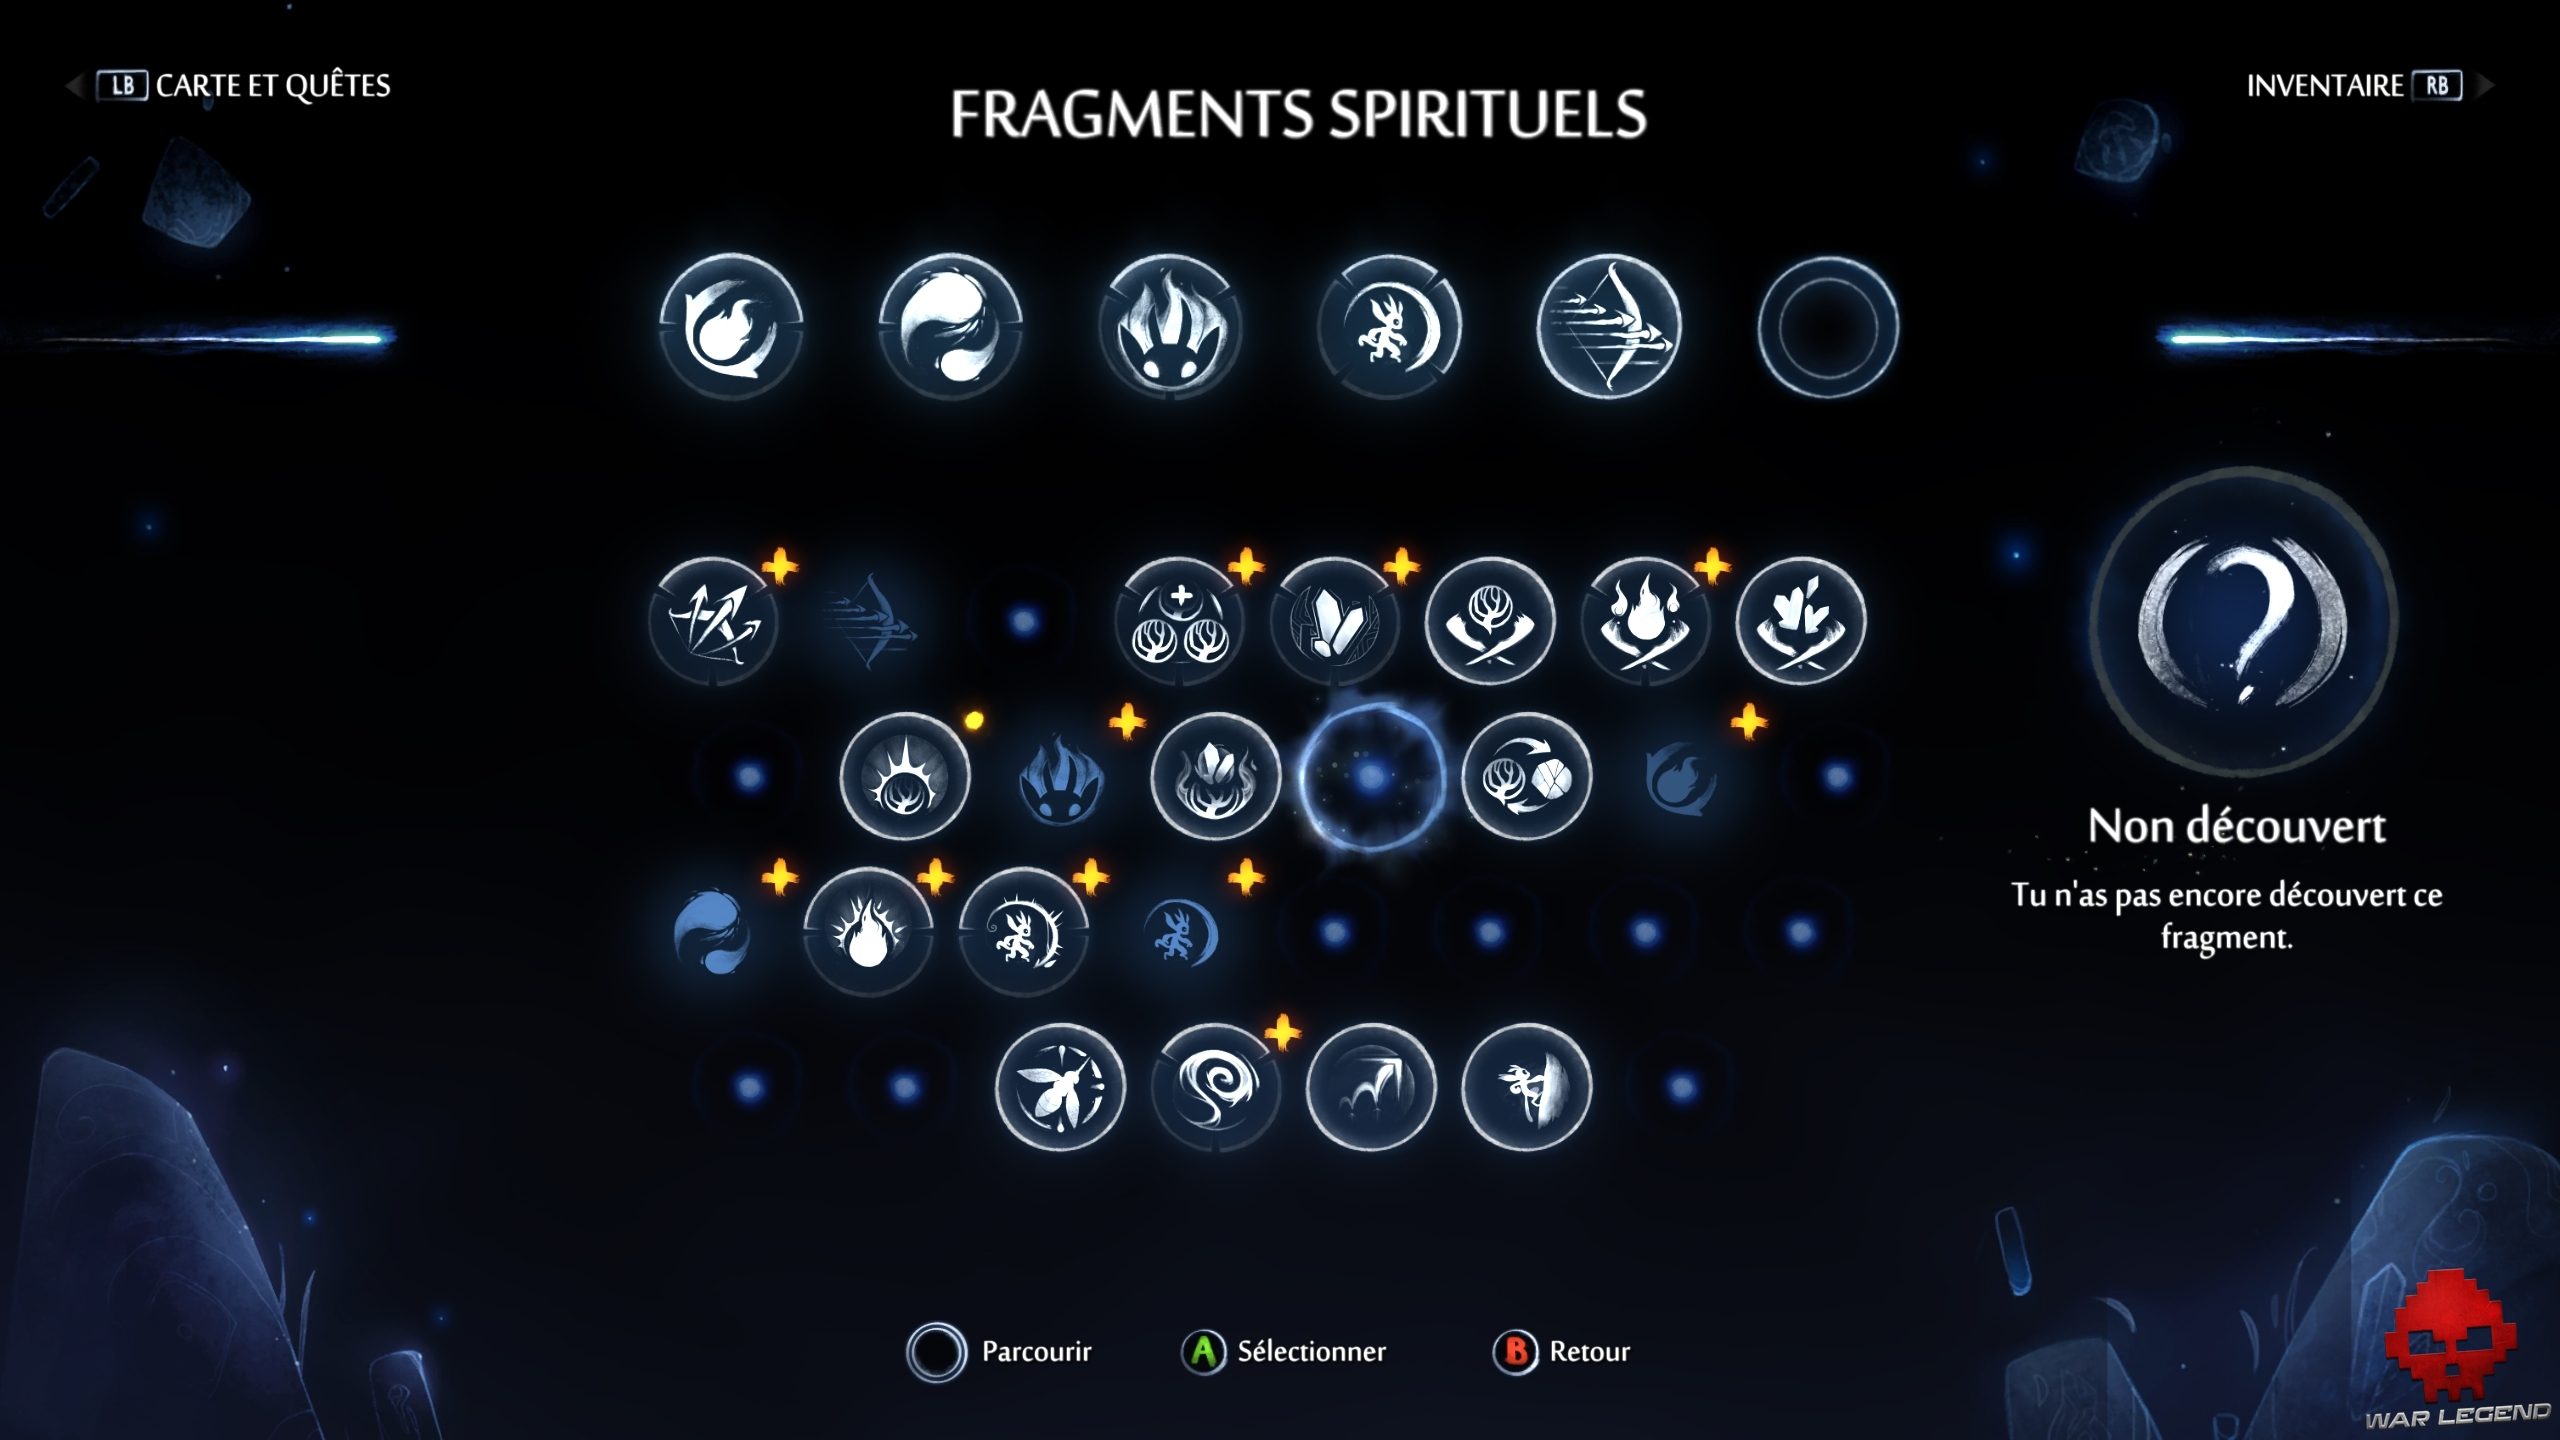 WL Ori and the will of the wisps fragments spirituels